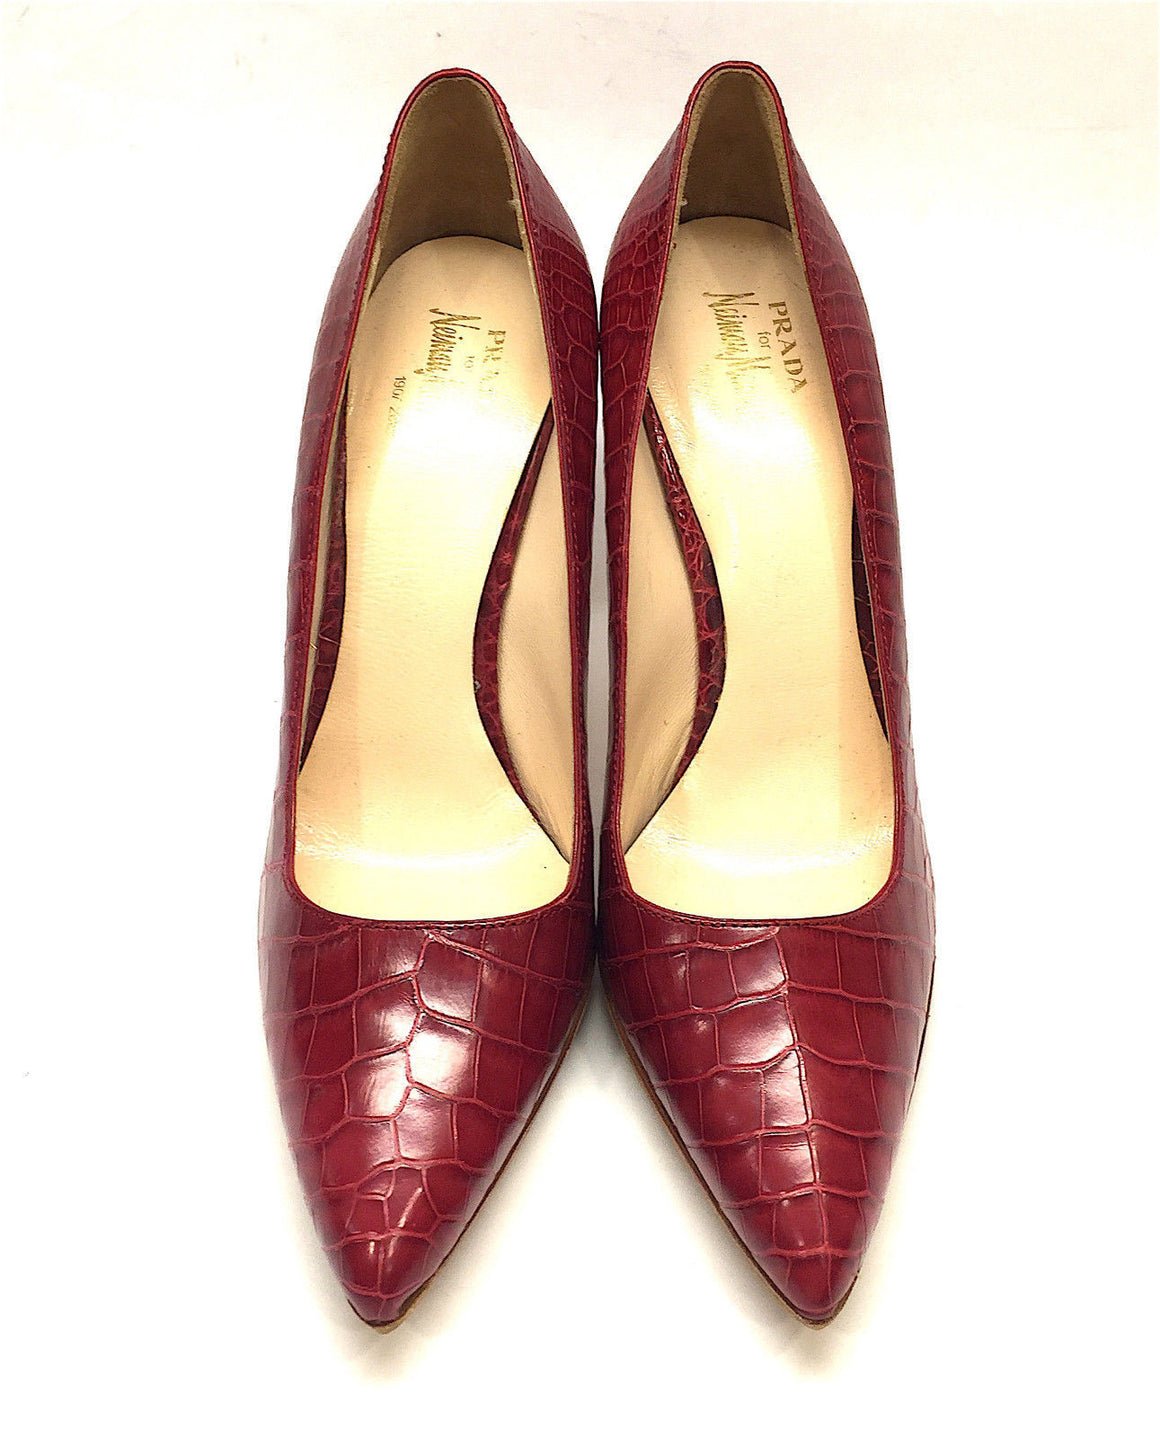 bisbiz.com PRADA  for  Neiman Marcus  Cherry-Red Croc-Skin Classic Heel Pumps Shoes  Size: 37 / 7 - Bis Luxury Resale